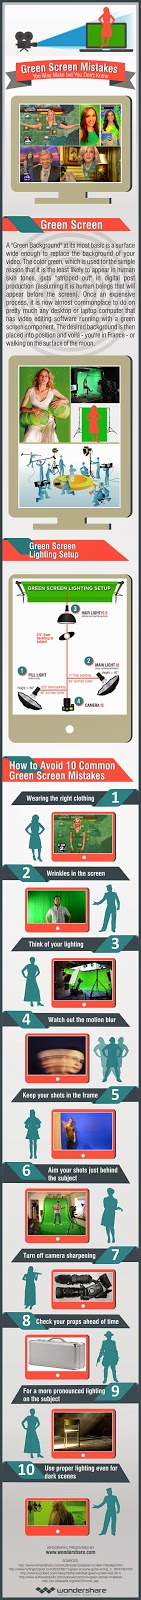 http://www.wondershare.com/multimedia-tips/green-screen-mistakes.html